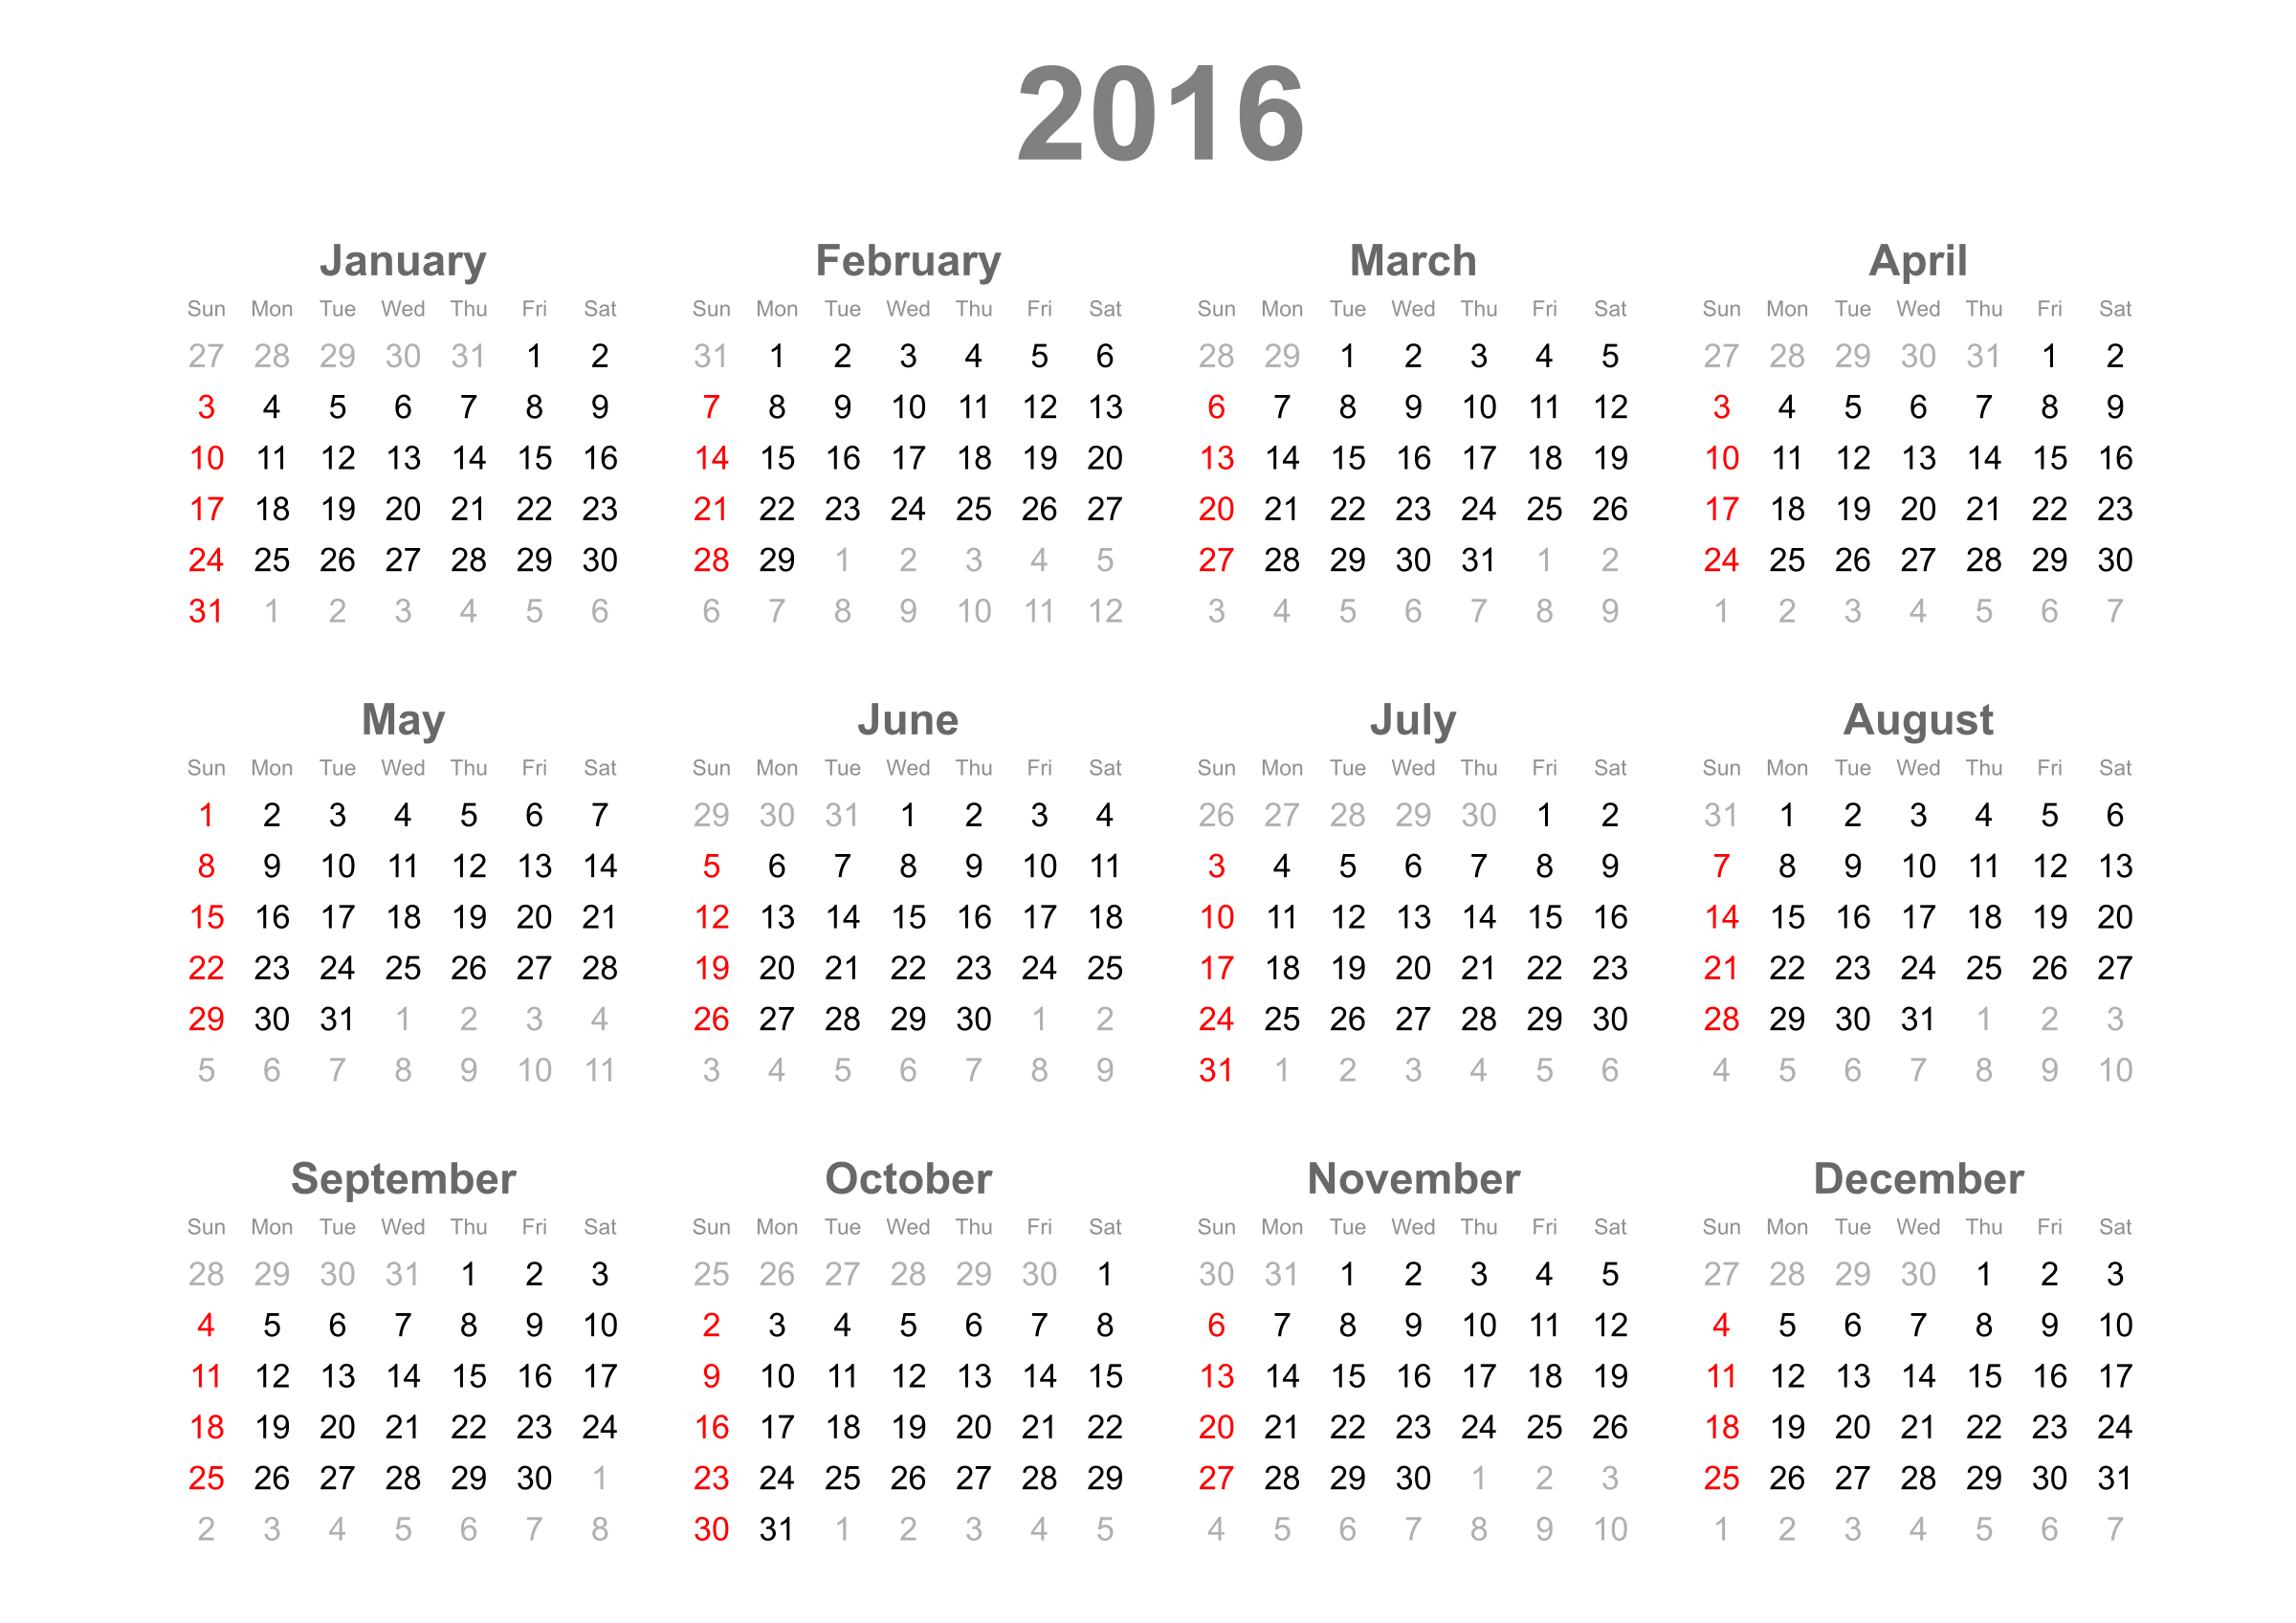 2016 calendar png. Icons free and downloads